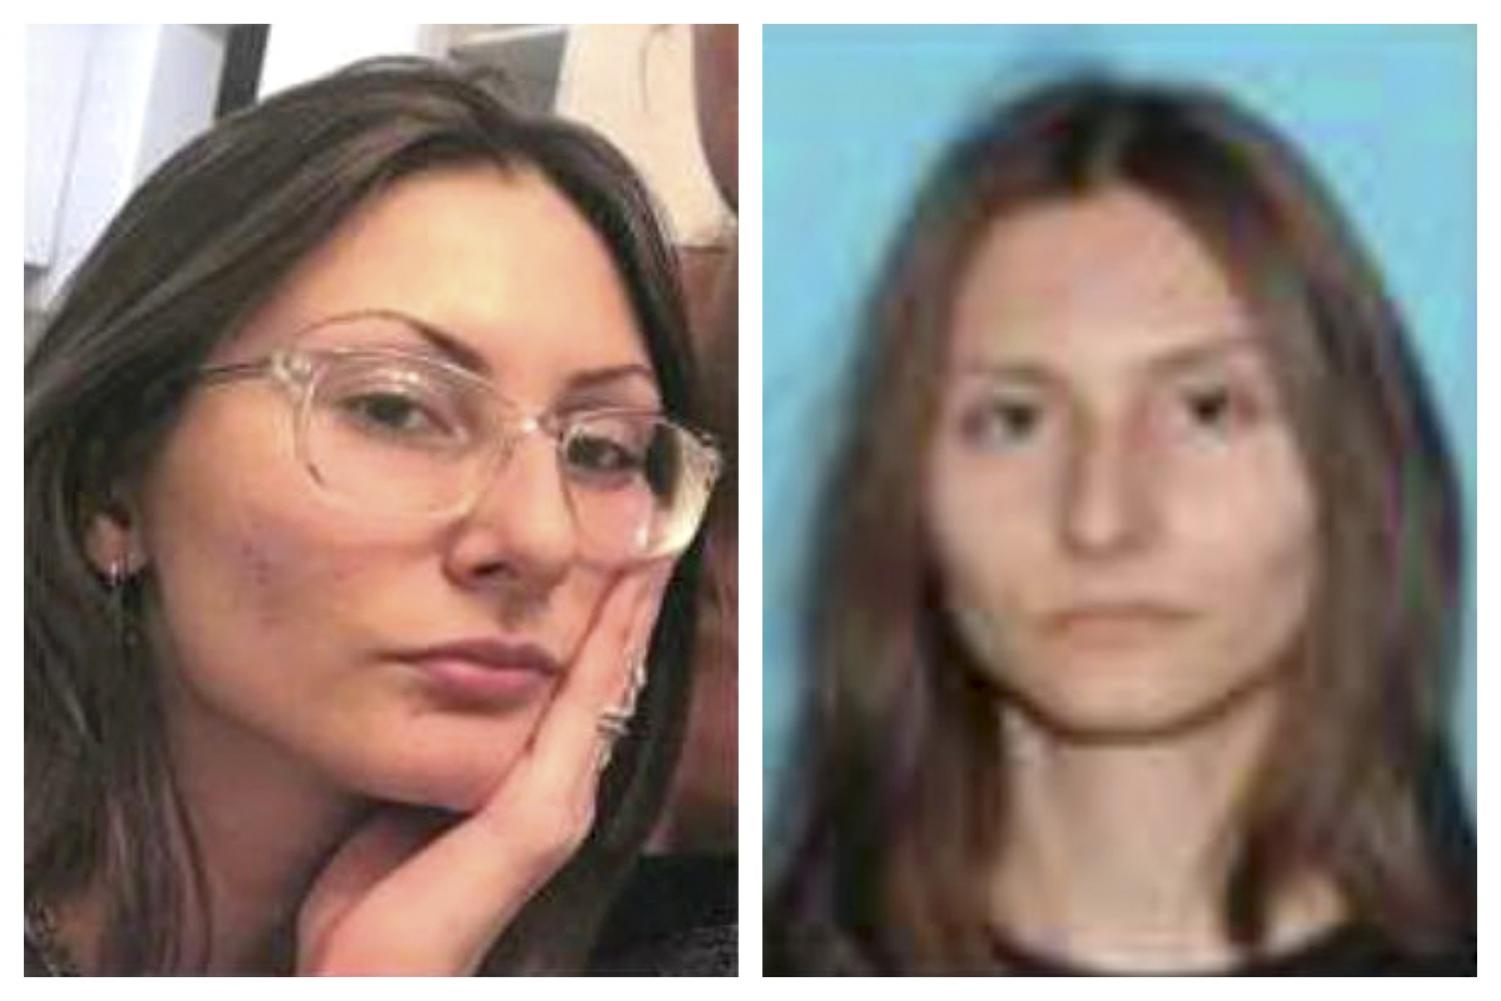 This combination of undated photos released by the Jefferson County, Colo., Sheriff's Office on Tuesday, April 16, 2019 shows Sol Pais. On Tuesday authorities said they are looking pais, suspected of making threats on Columbine High School, just days before the 20th anniversary of a mass shooting that killed 13 people.